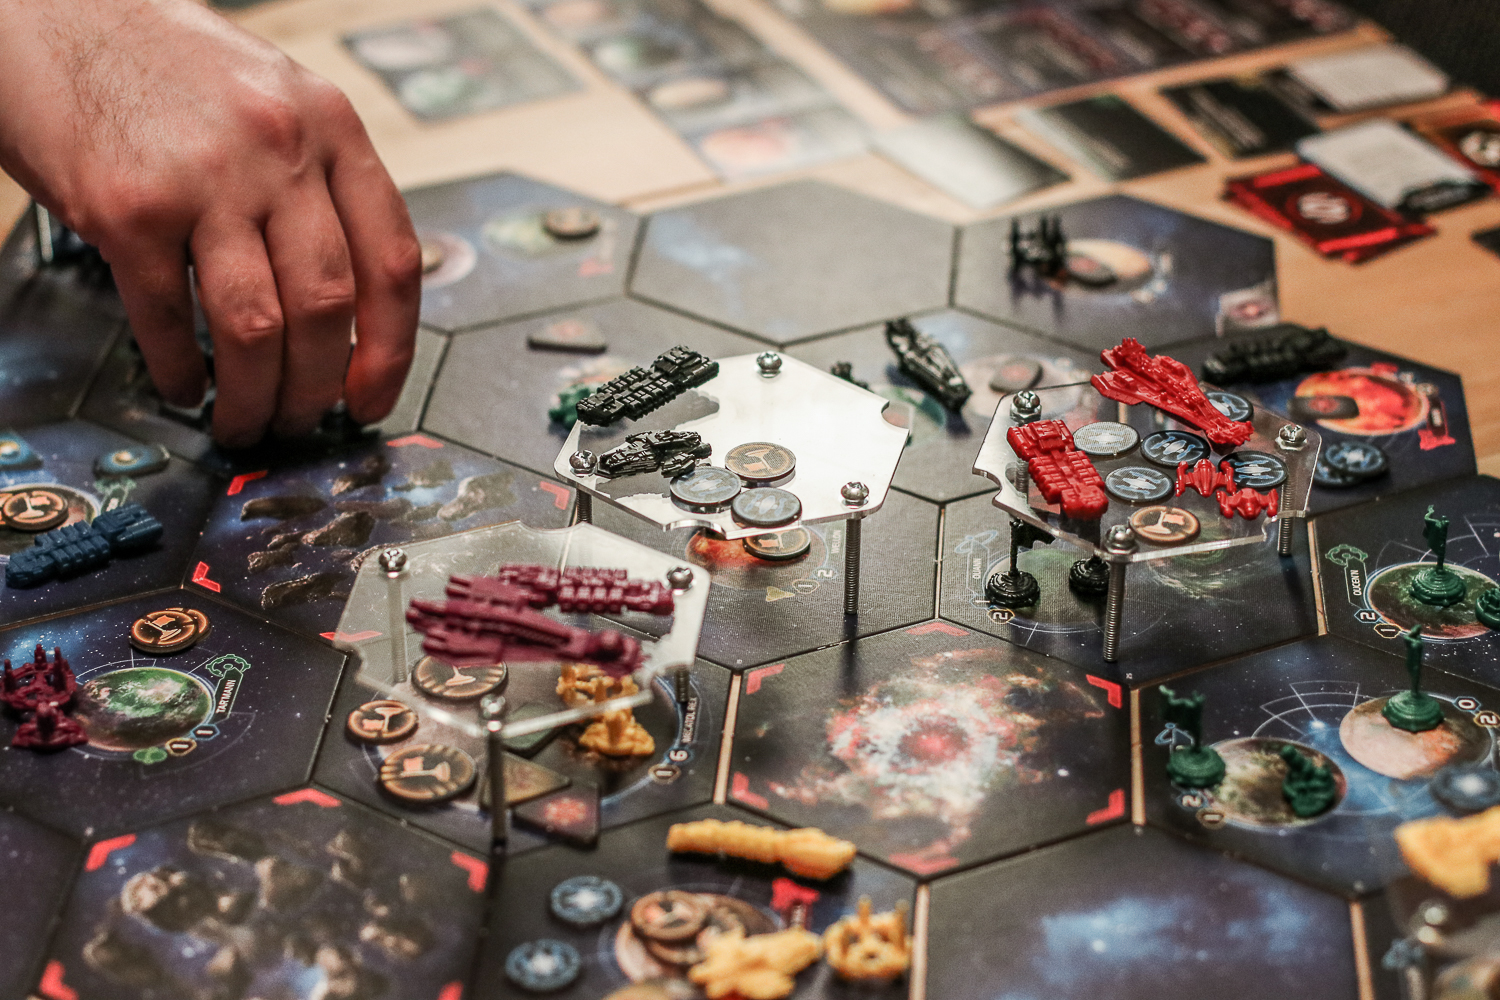 Brock (red) was up to some wormhole shenanigans trying to goad Scott (black) into combat.